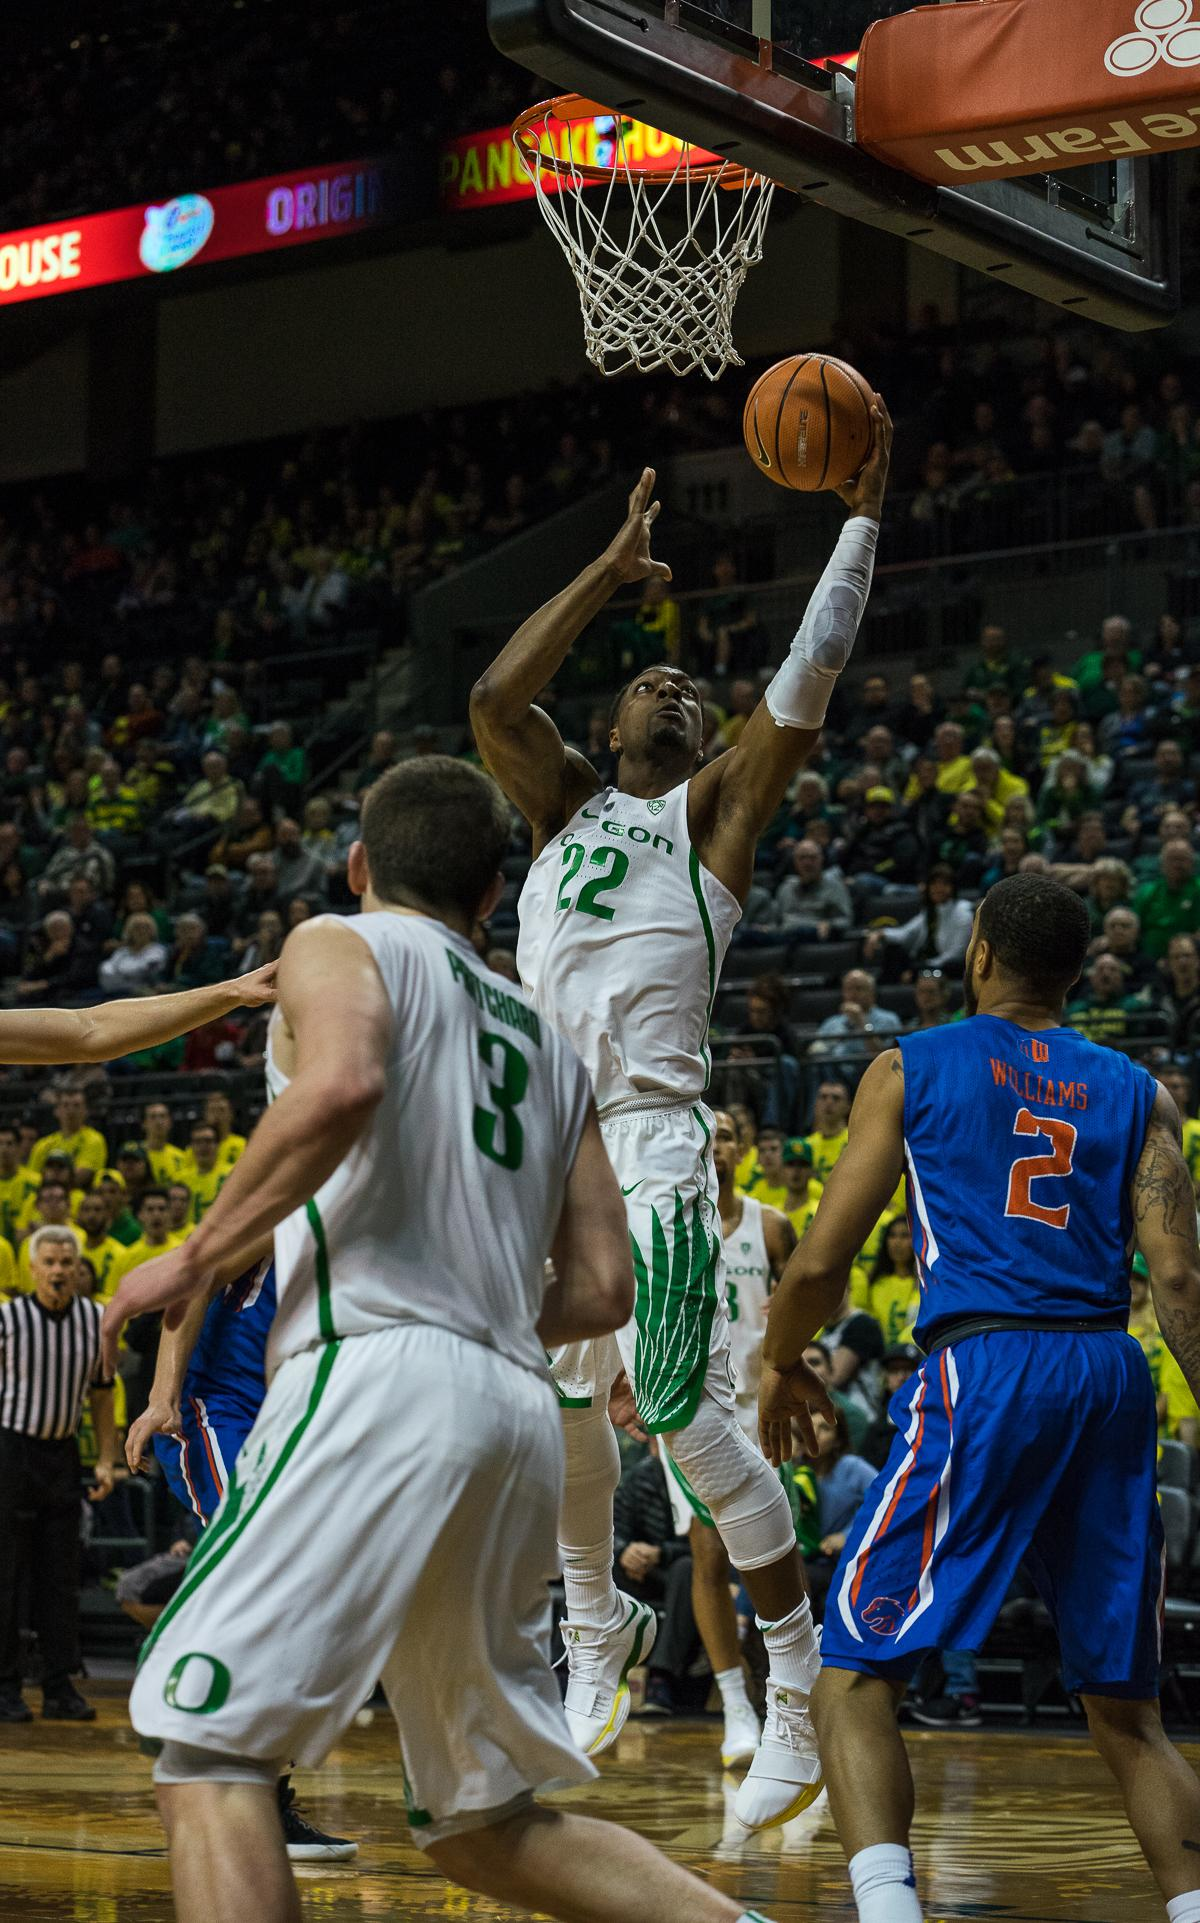 University of Oregon Duck MiKyle McIntosh (#22) completes a layup as Boise State Bronco Lexus Williams (#2) looks on. The Boise State Broncos defeated the University of Oregon Ducks 73 – 70 at Matthew Knight Arena in Eugene, Ore., on December 1, 2017. Photo by Kit MacAvoy, Oregon News Lab